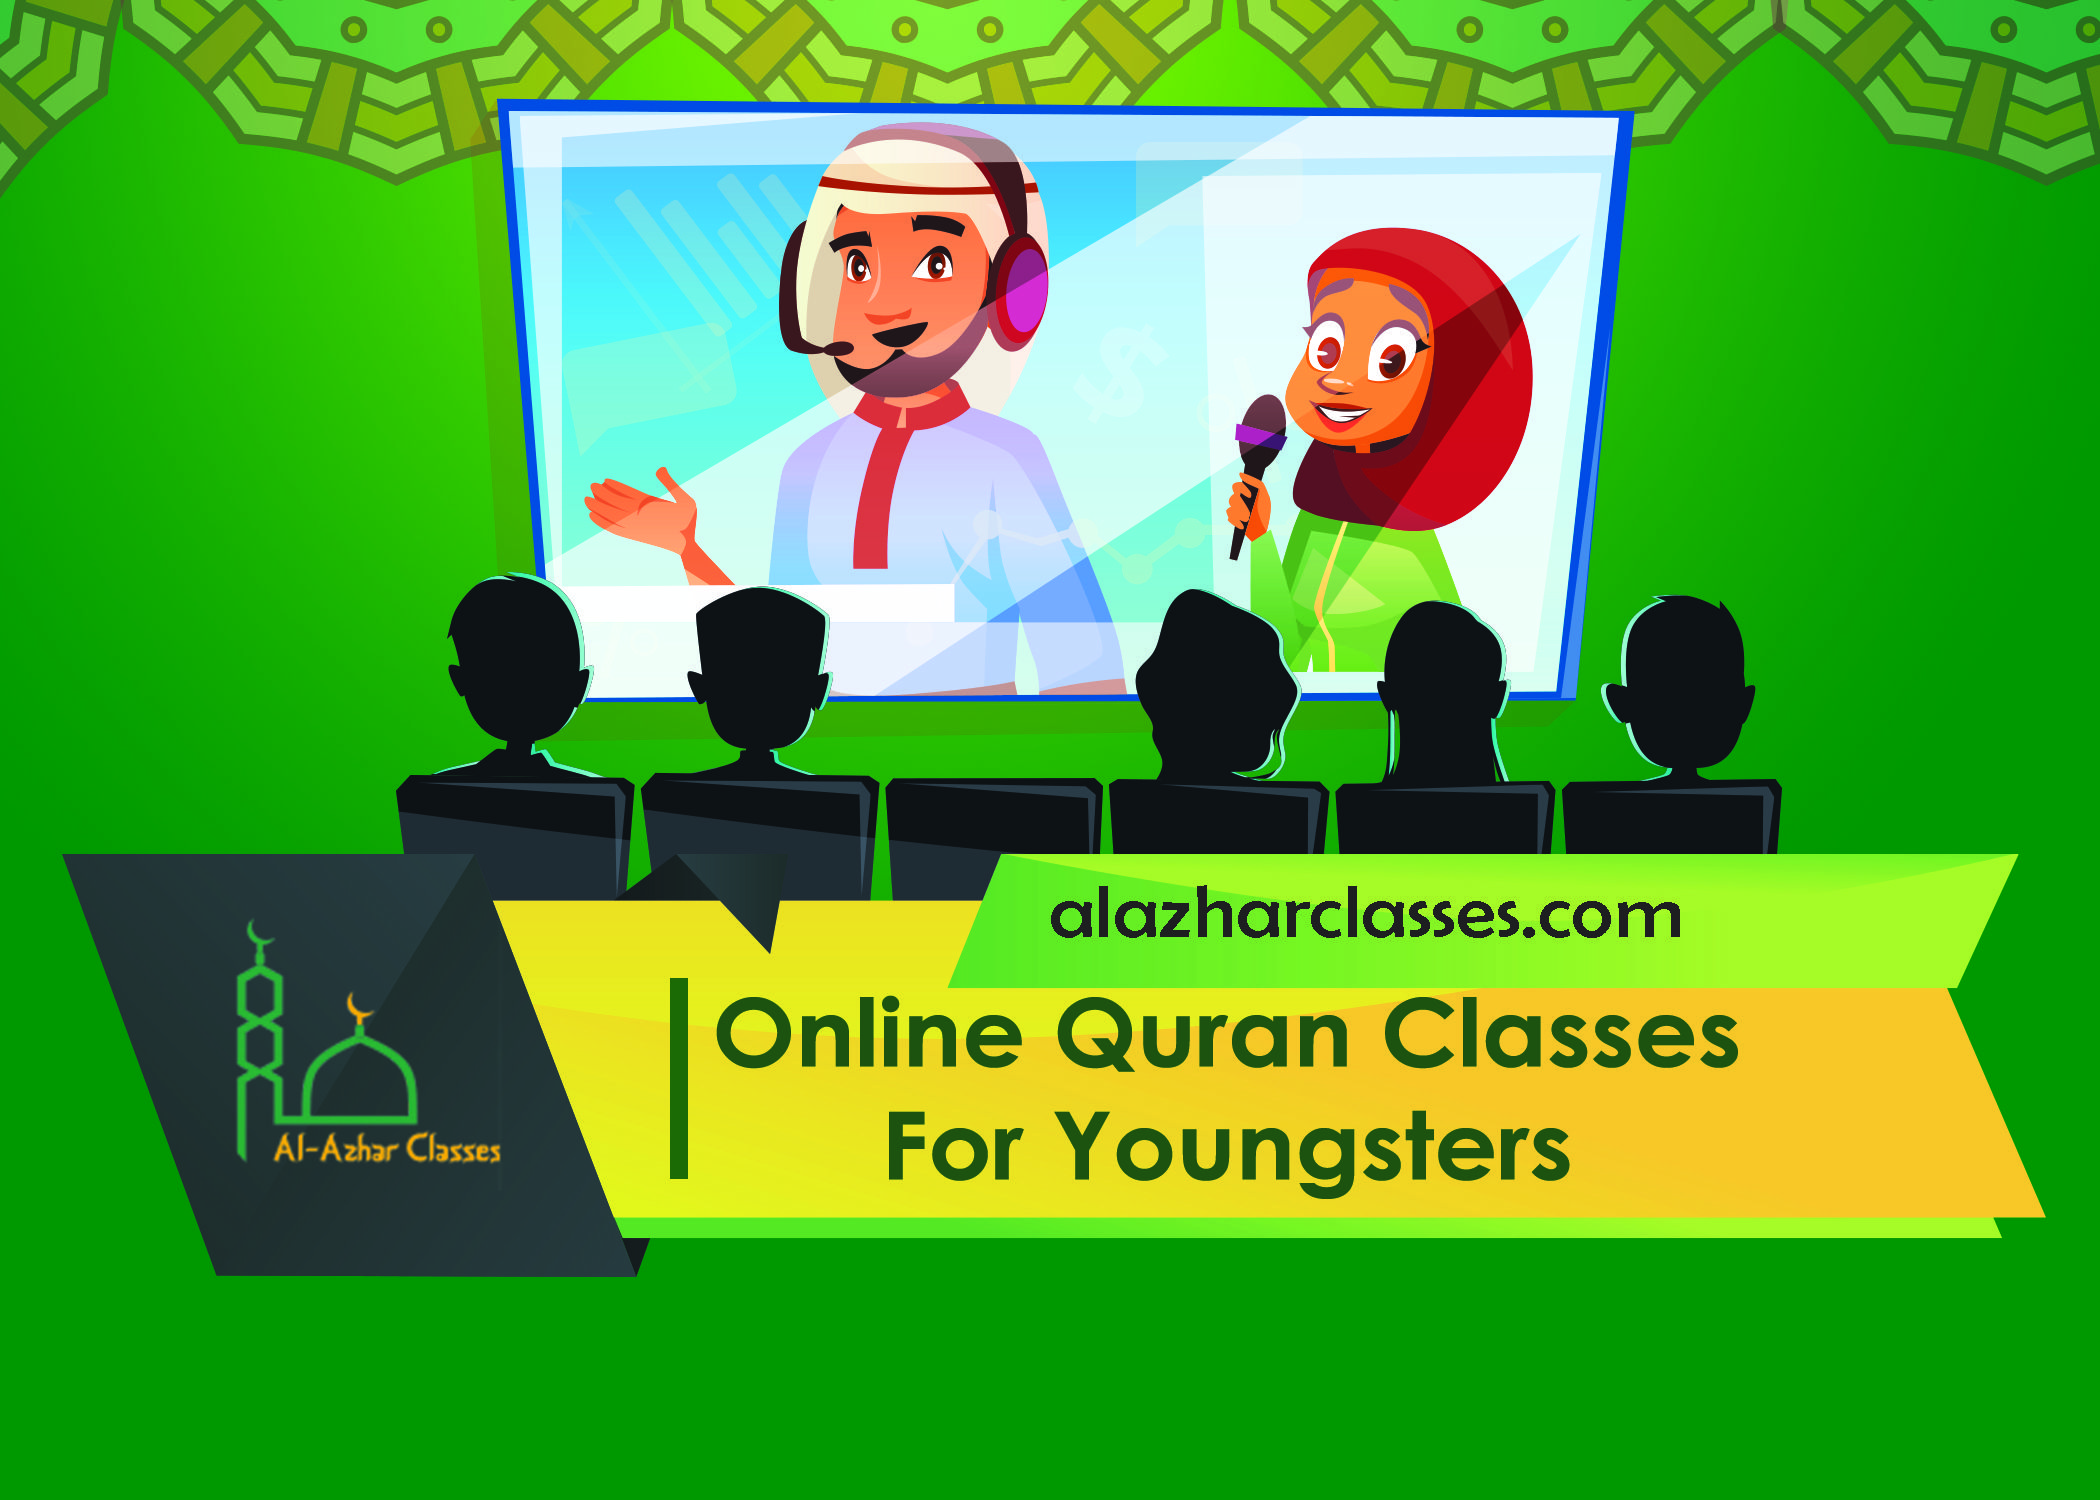 Online Quran Classes For Youngsters